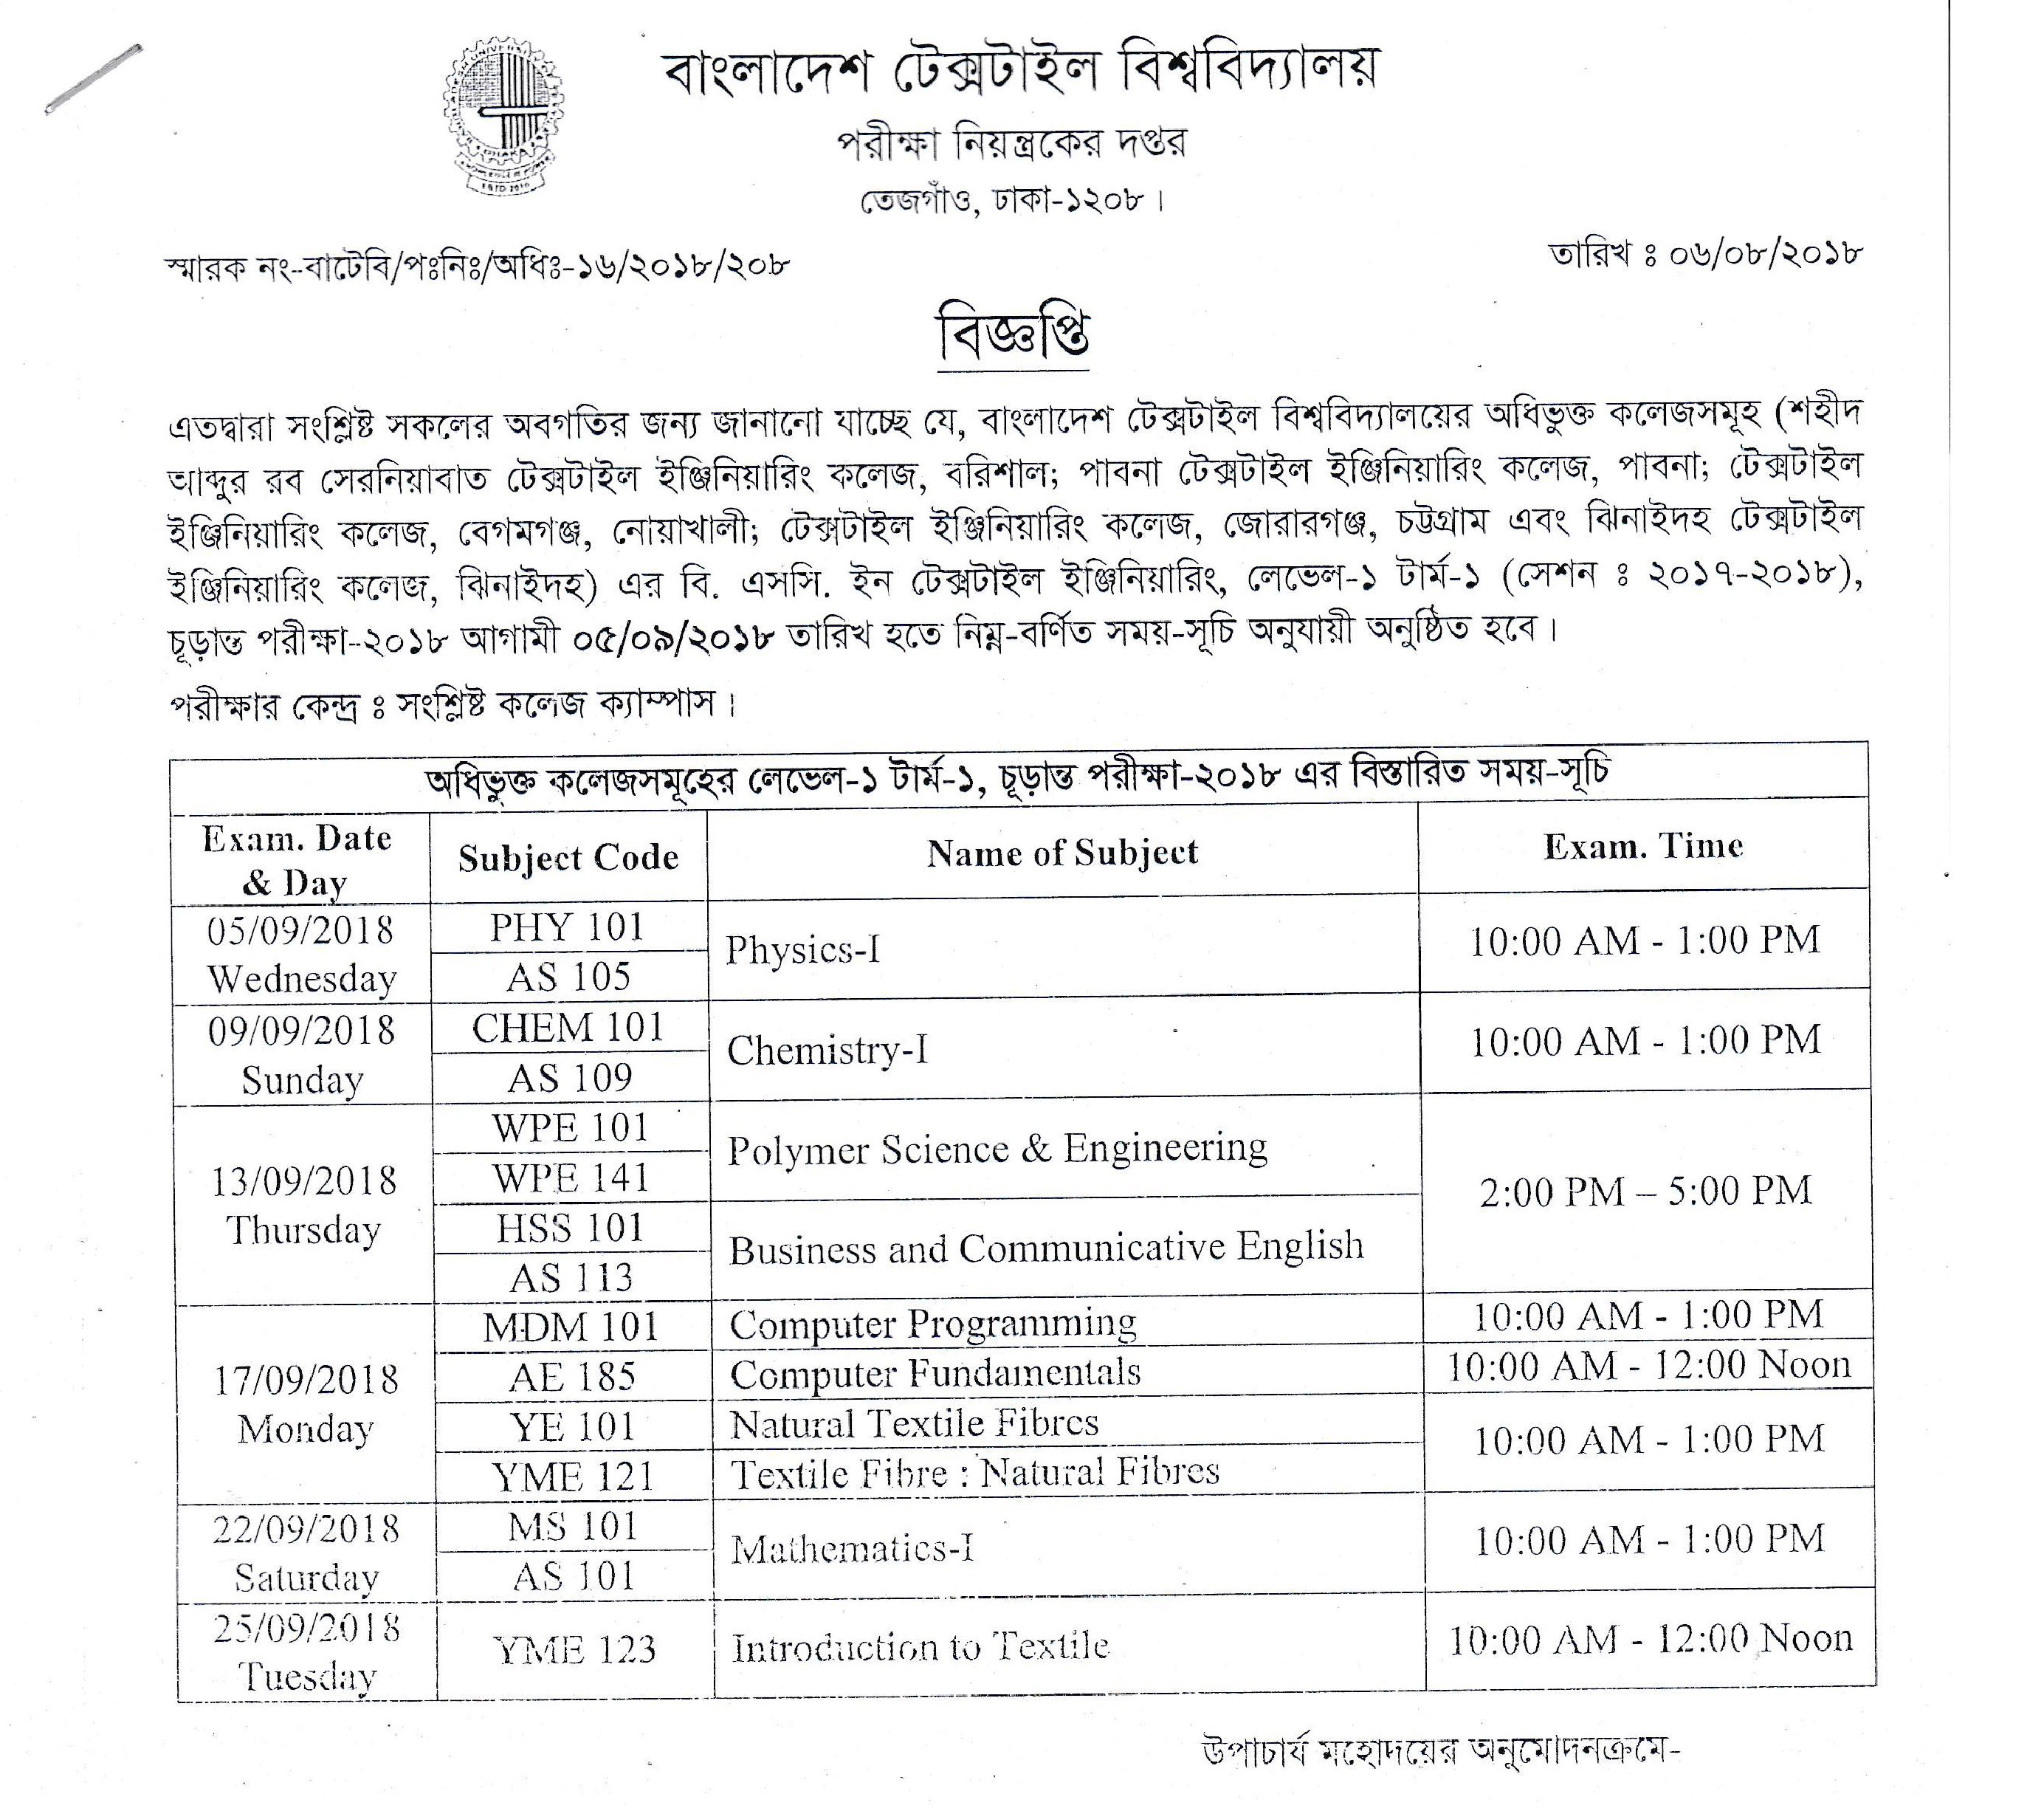 Exam Schedule for B.Sc. in Textile Engineering L-1 T-1 Exam-2018